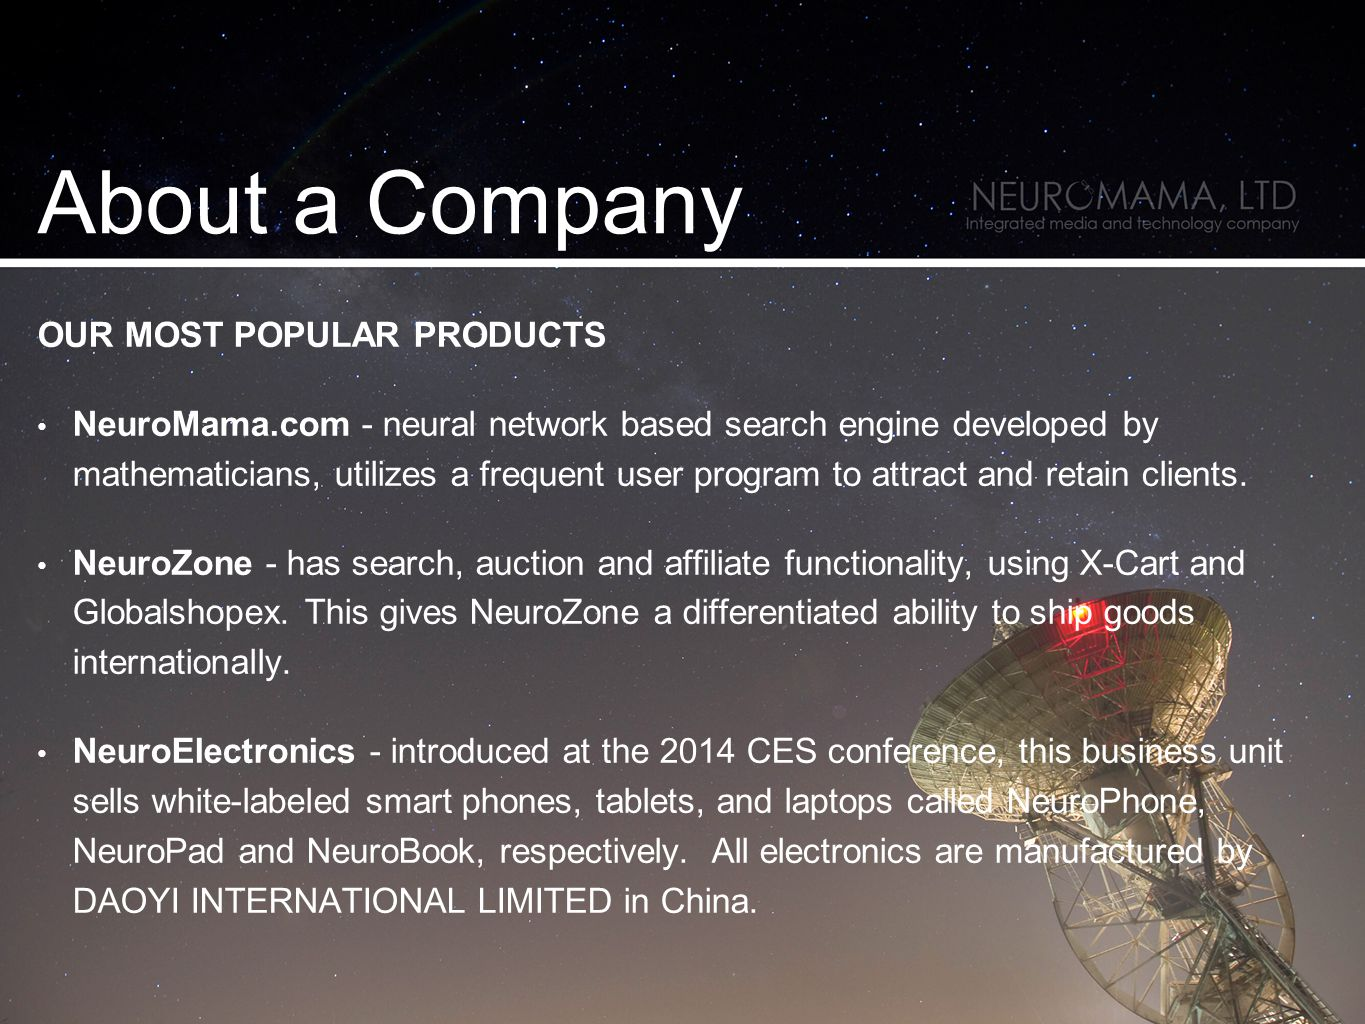 OUR MOST POPULAR PRODUCTS NeuroMama.com - neural network based search engine developed by mathematicians, utilizes a frequent user program to attract and retain clients.